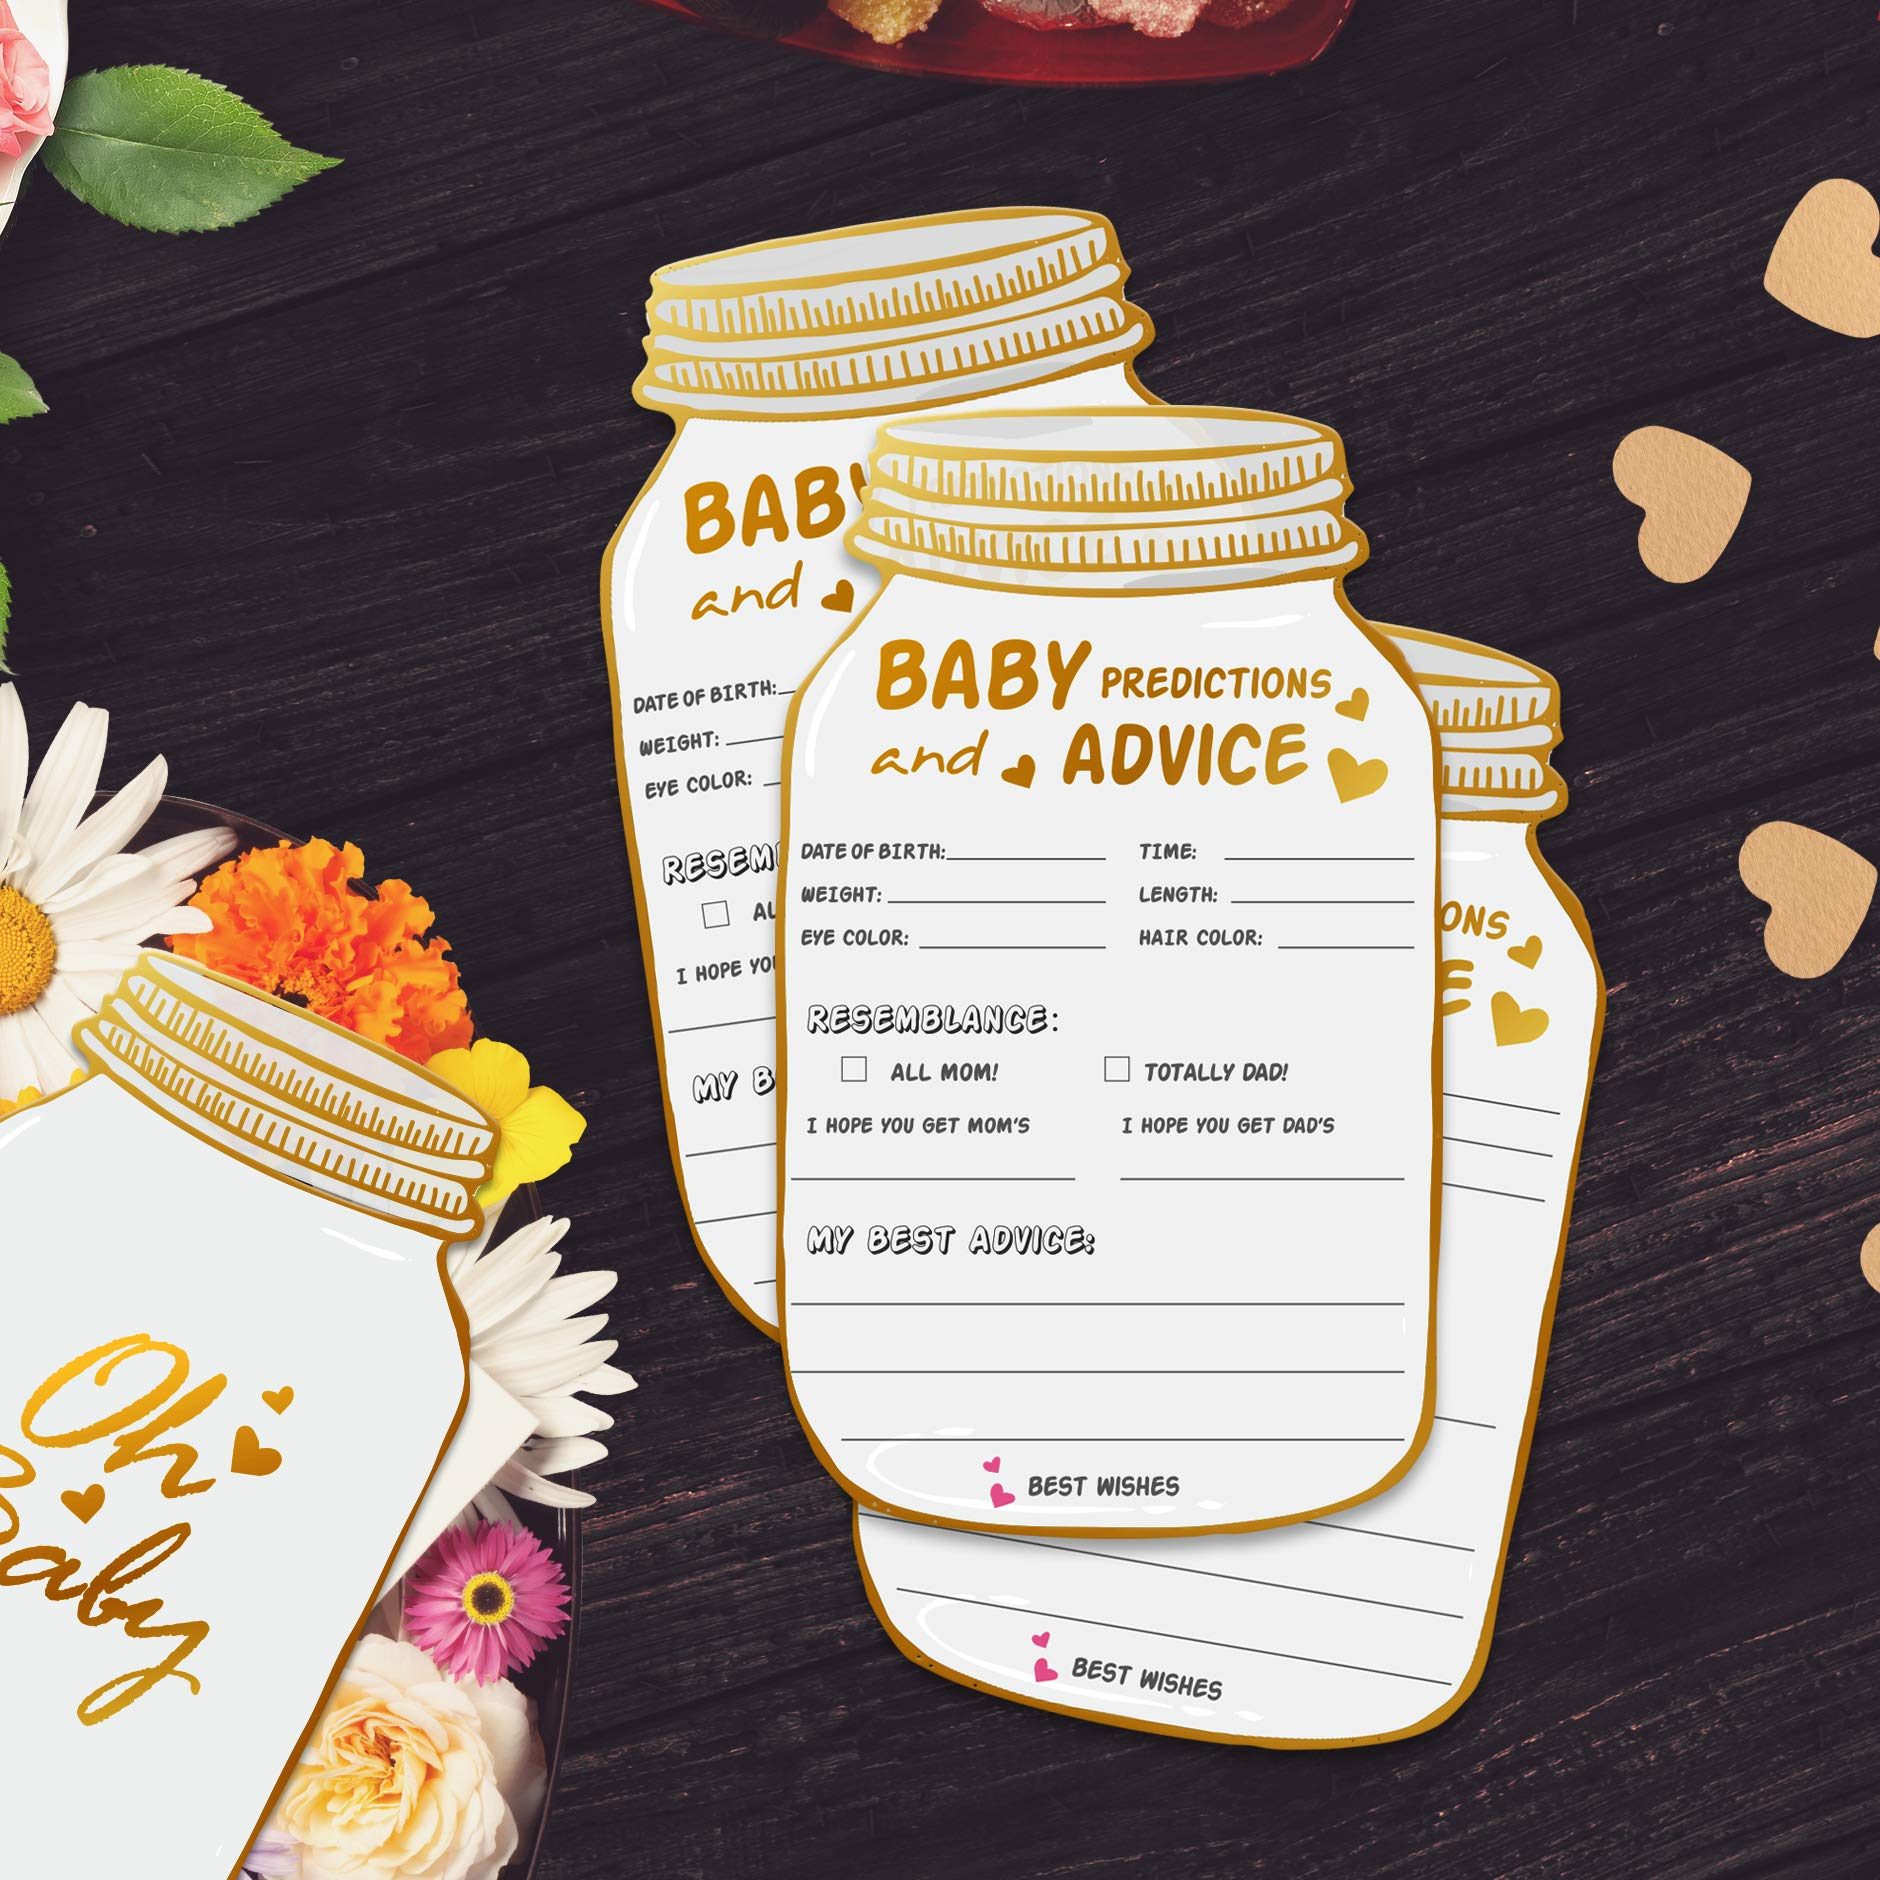 50 Mason Jar Advice and Prediction Cards for Baby Shower Game, Baby Shower Prediction and Advice Cards,Gender Neutral Boy or Girl,Fun Baby Shower Games Favors,New Parent Message Advice Book - 4x7inch by yuzi-n (Image #5)